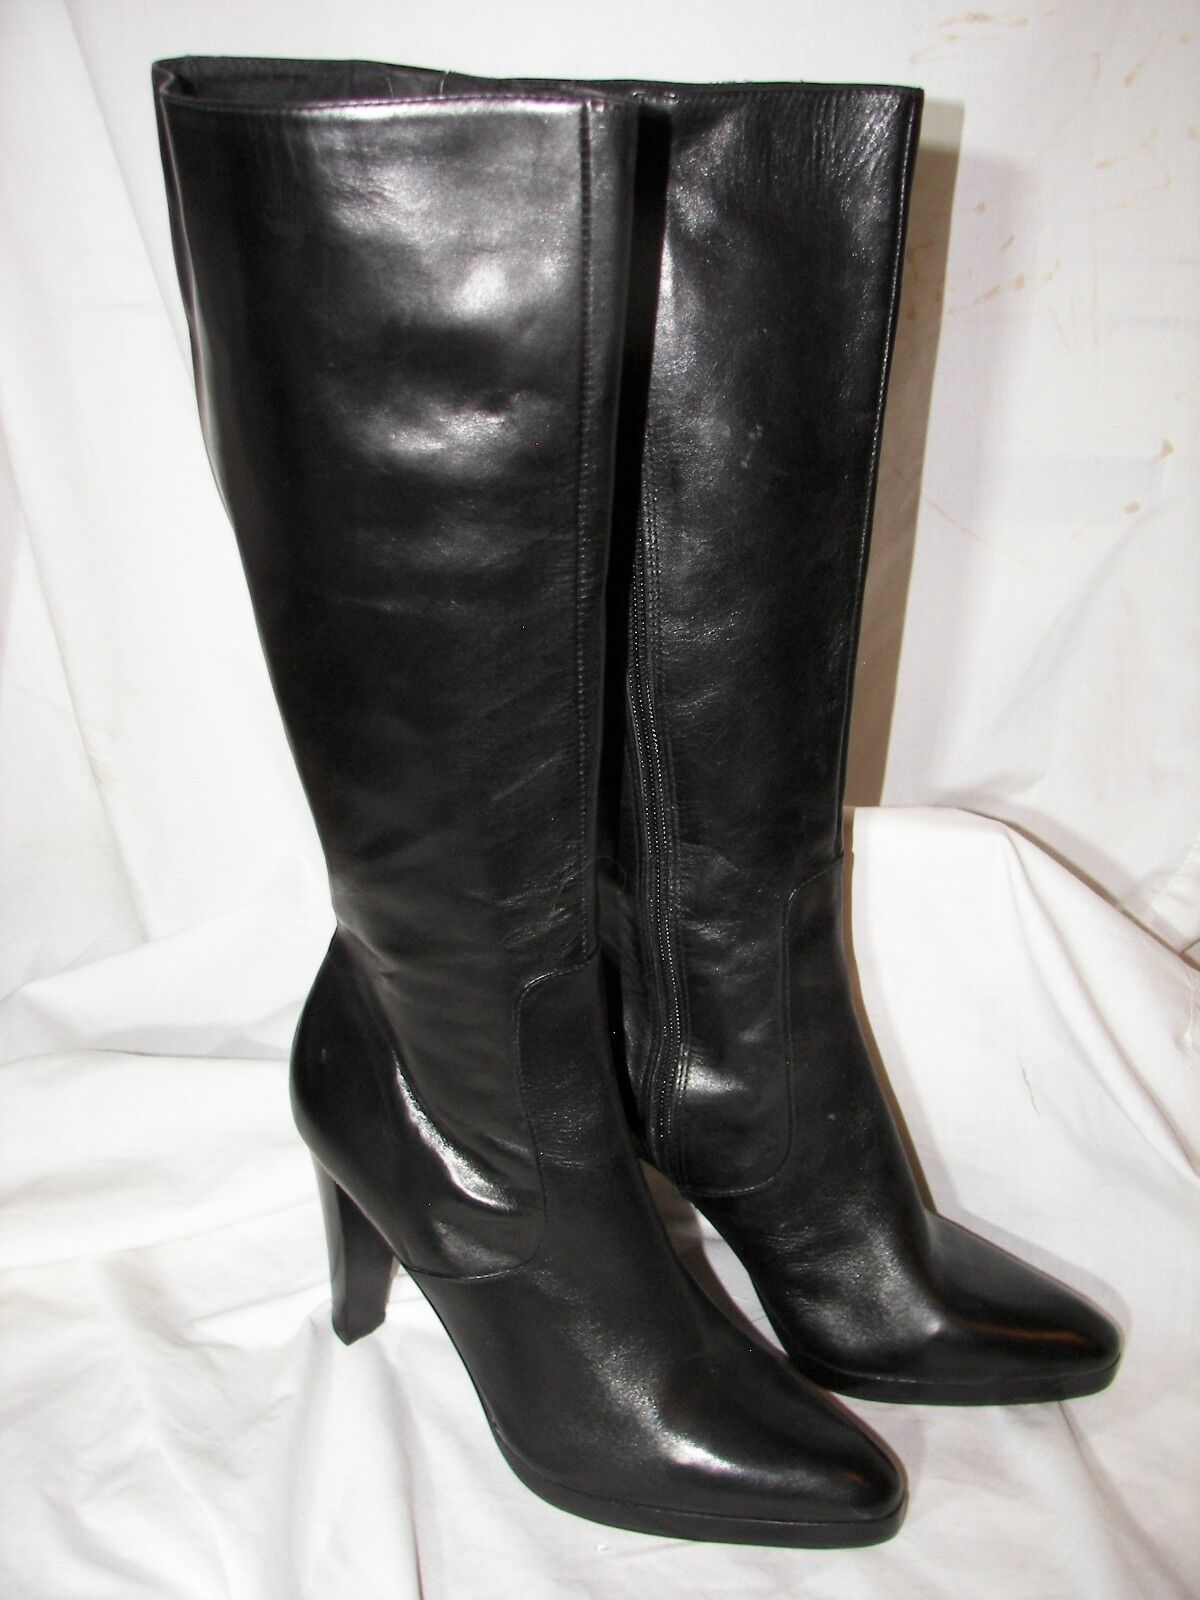 Gently used Steve by Steve Madden Leather Zipper Platform Boots 10B